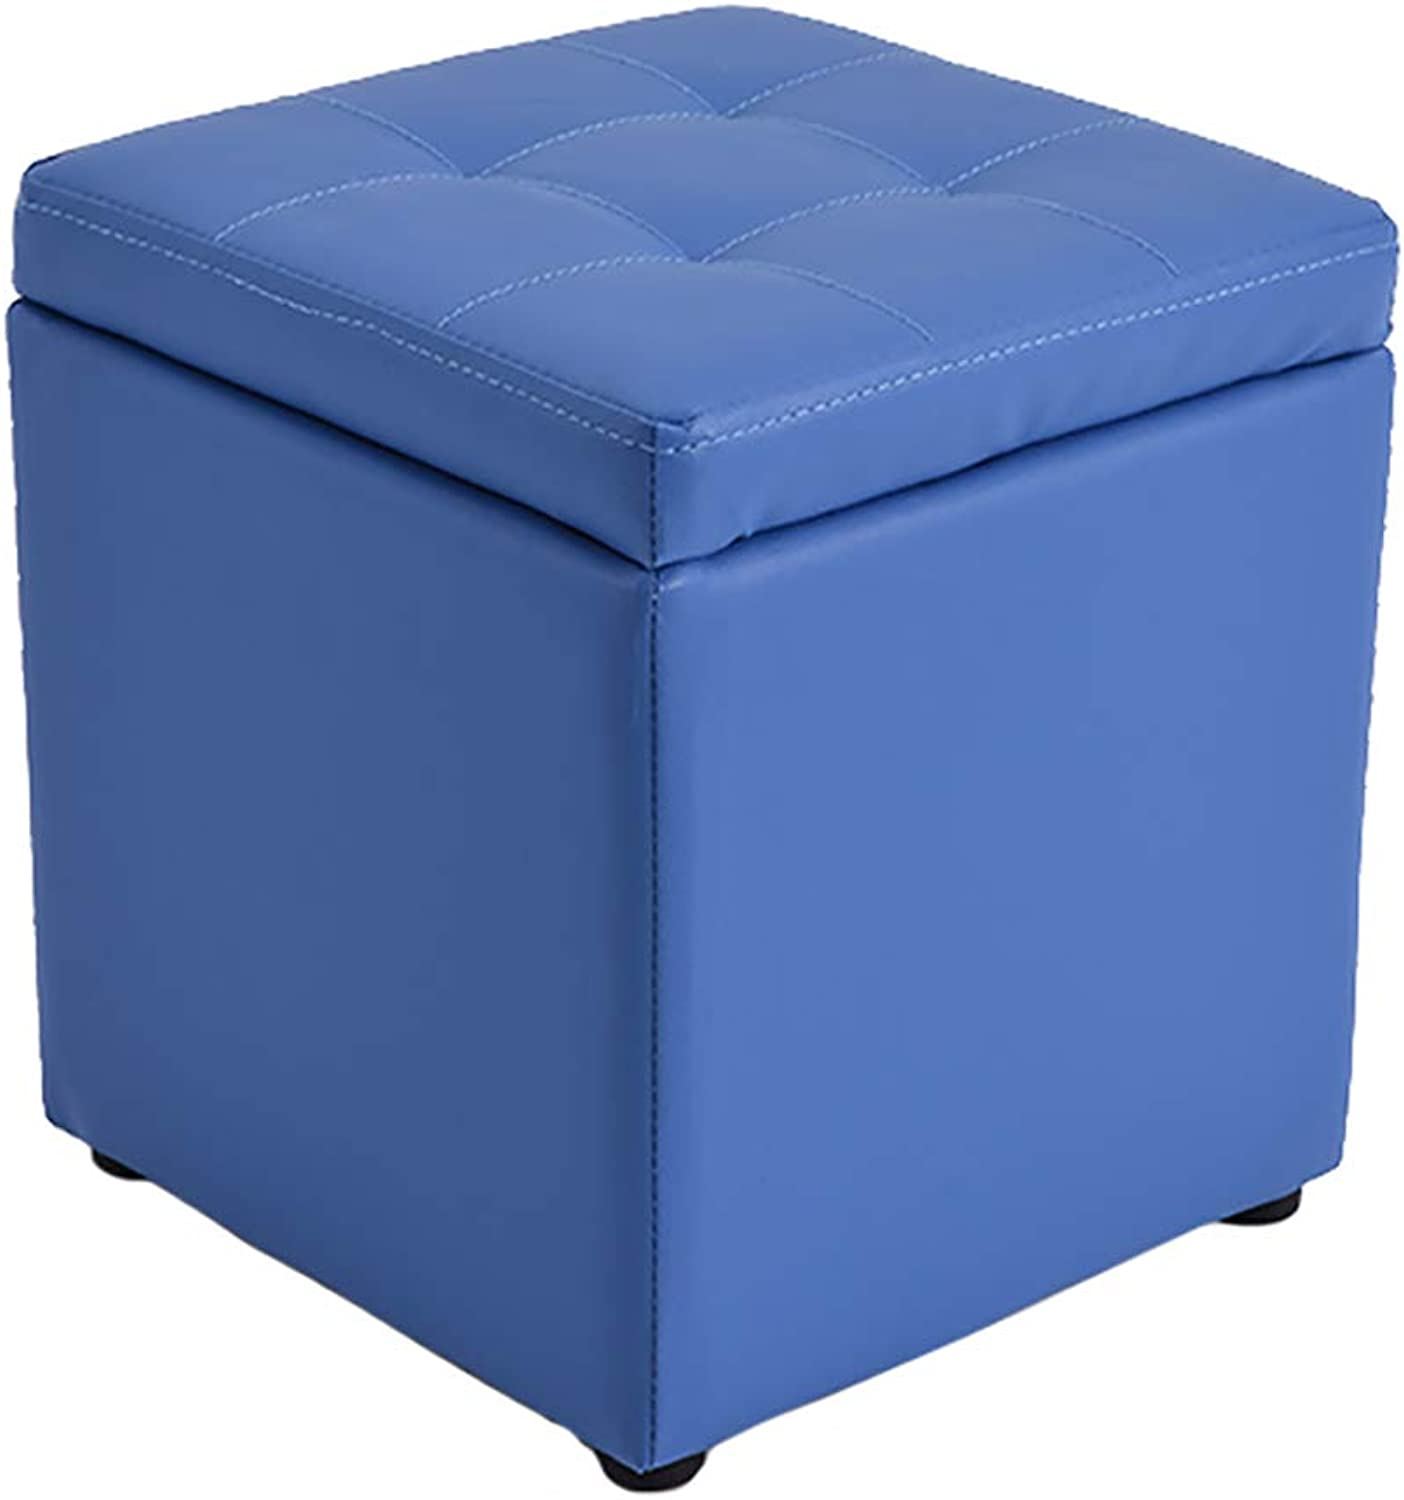 ZfgG Multi-Function Storage Stool Toy Storage Finishing Box Change shoes Bench Sofa Stool Living Room Bedroom (color   bluee)